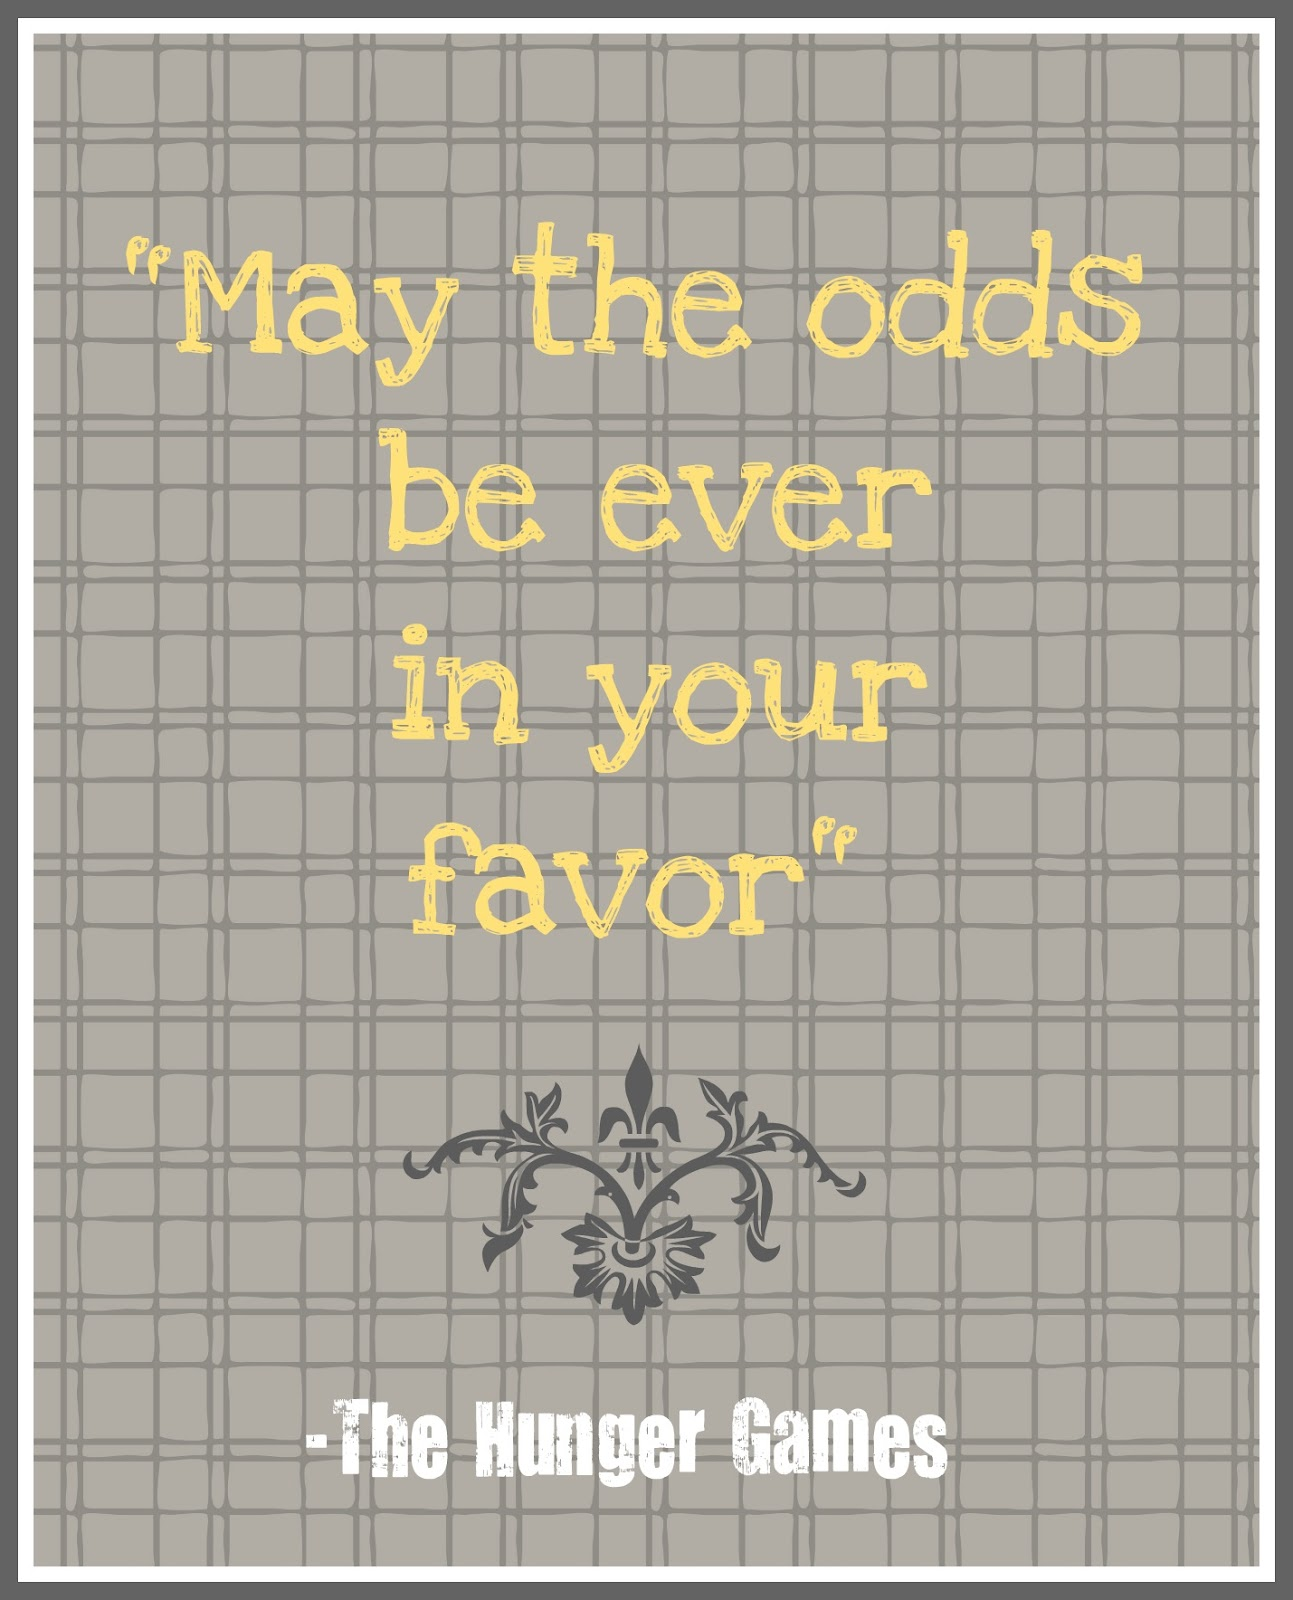 Tracing Echoes Quotes I Love In The Spirit Of The Hunger Games